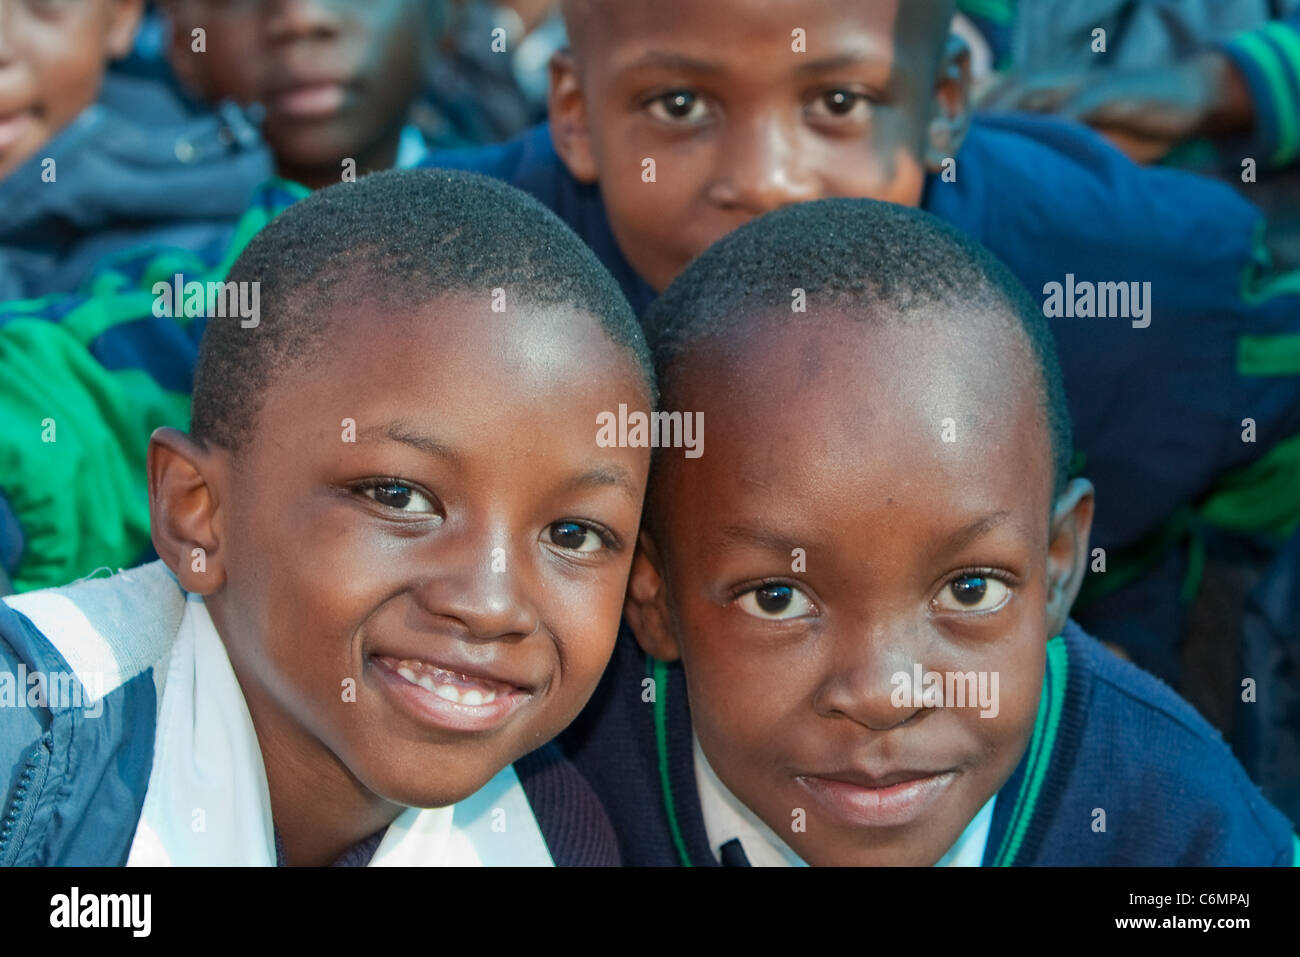 Primary school children at a rural school posing for the camera - Stock Image